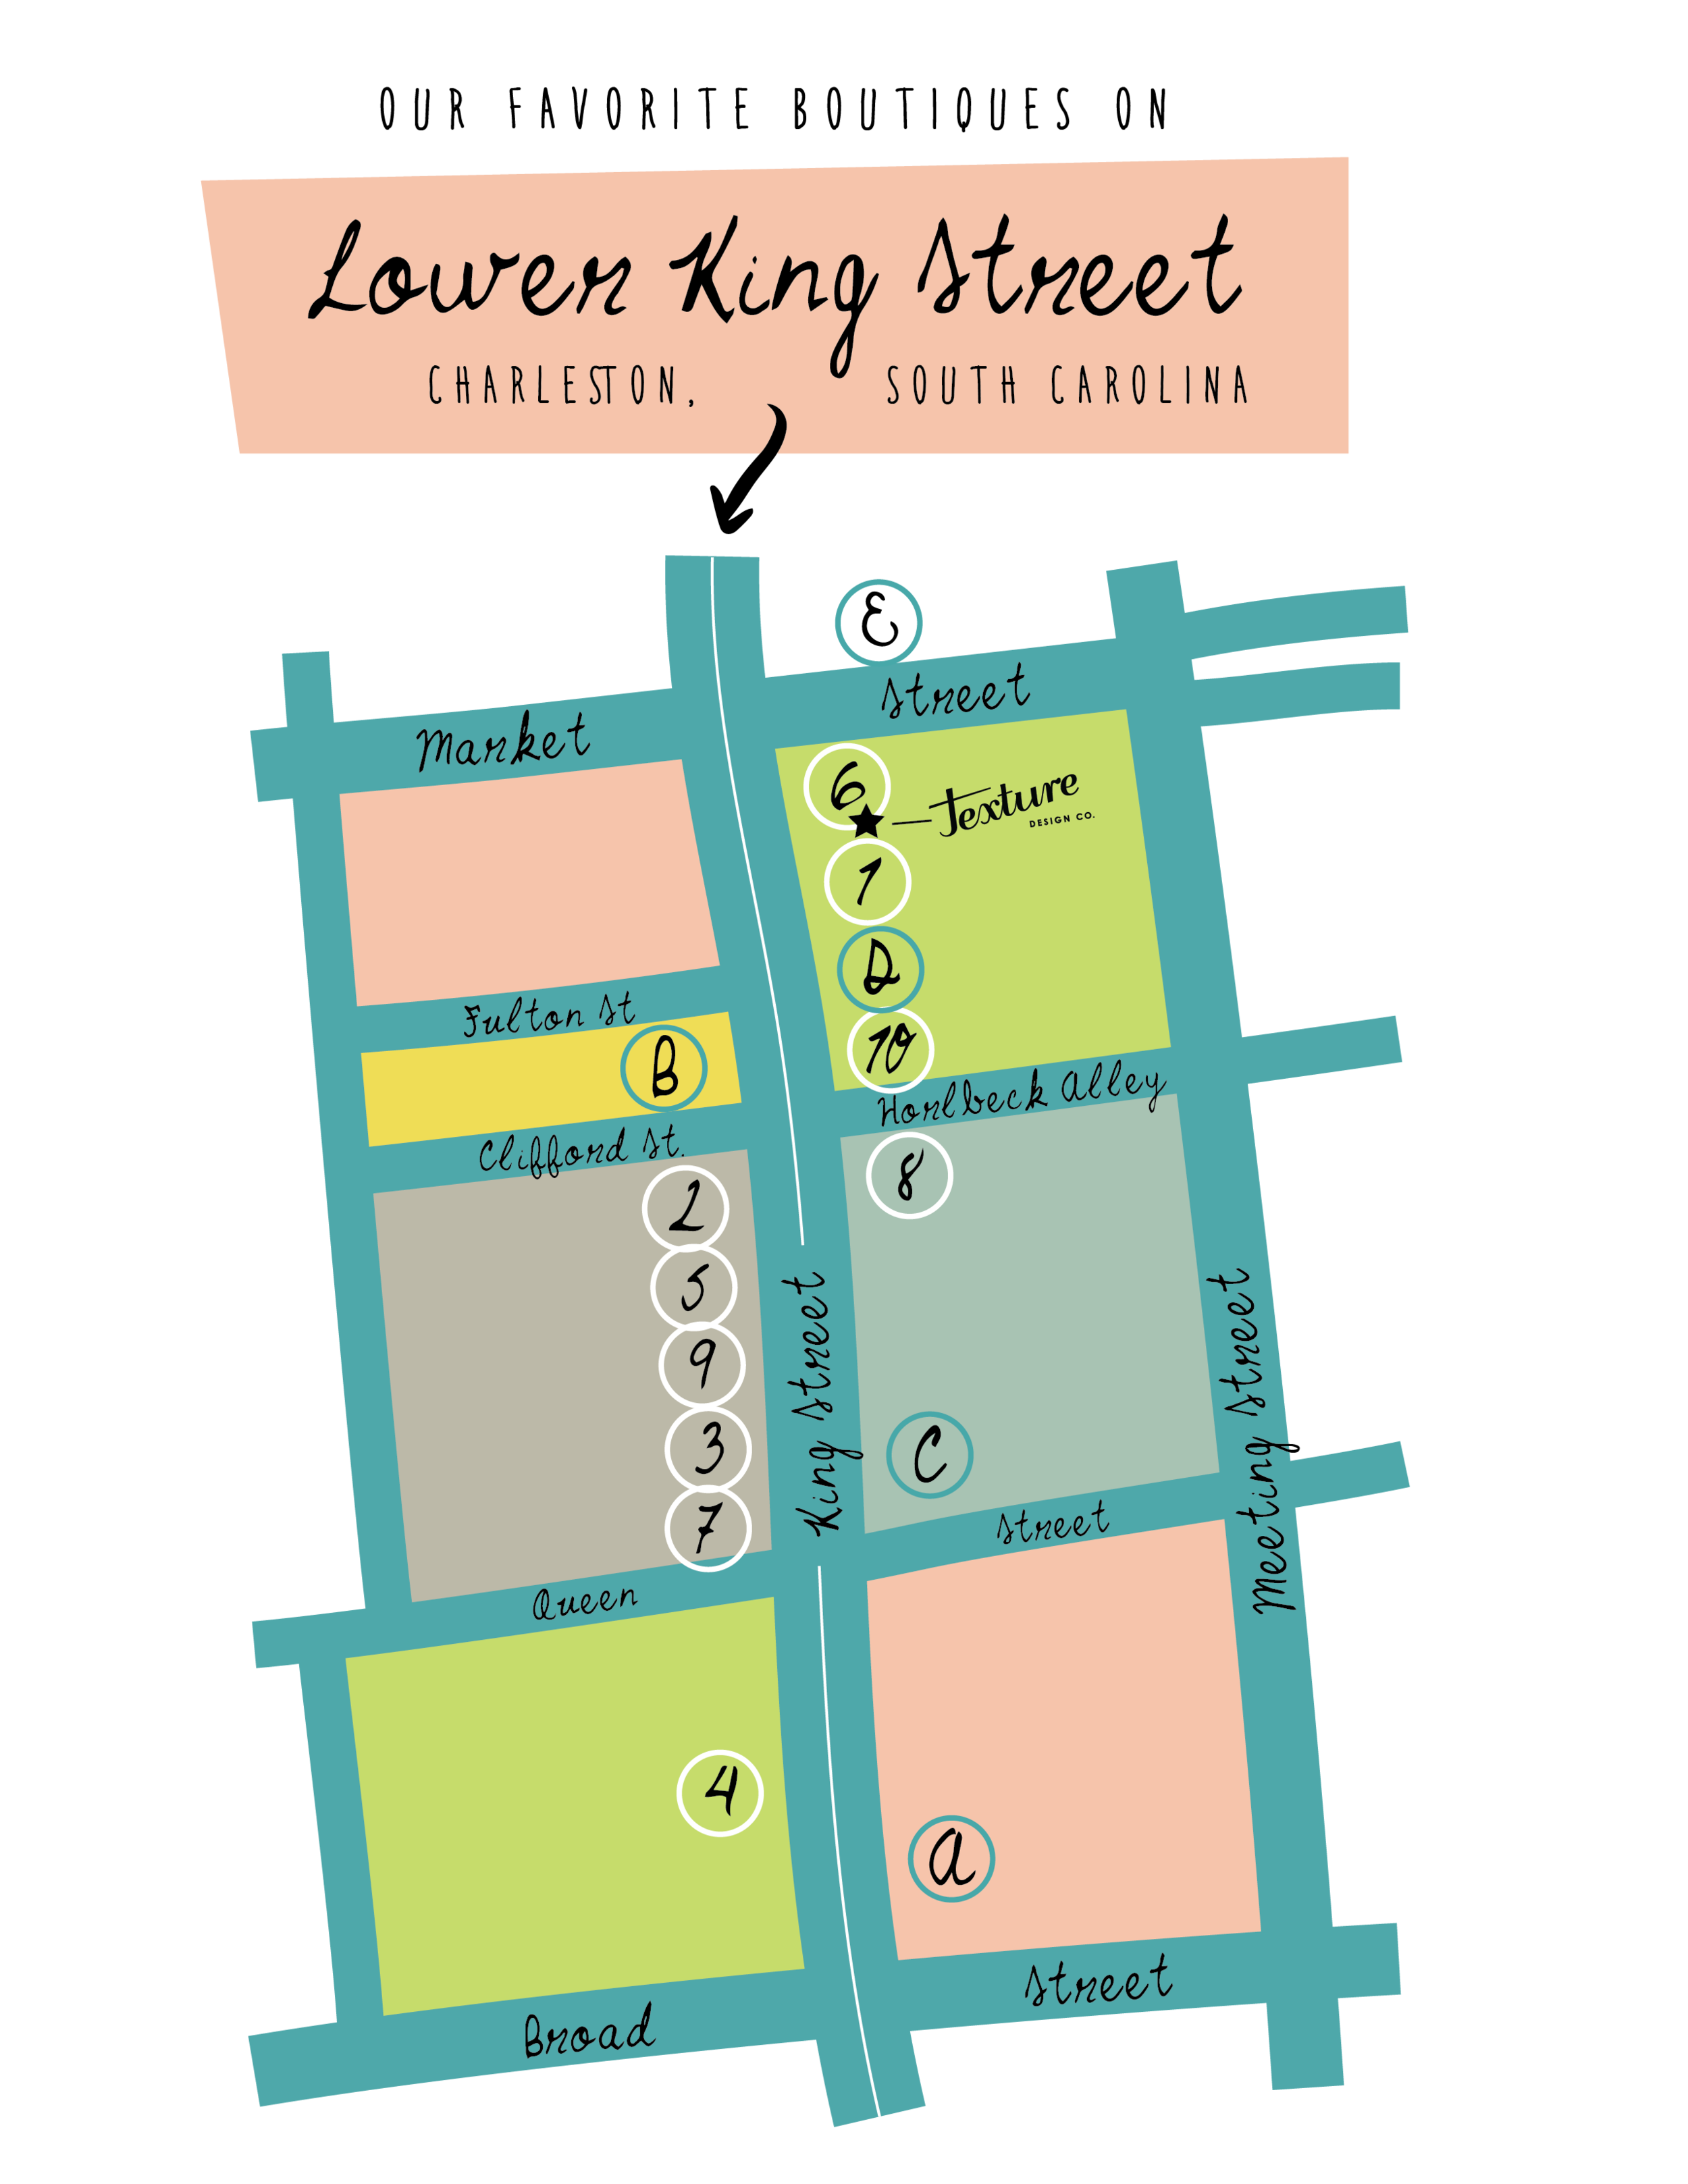 Complete Map of Lower King Street Destinations